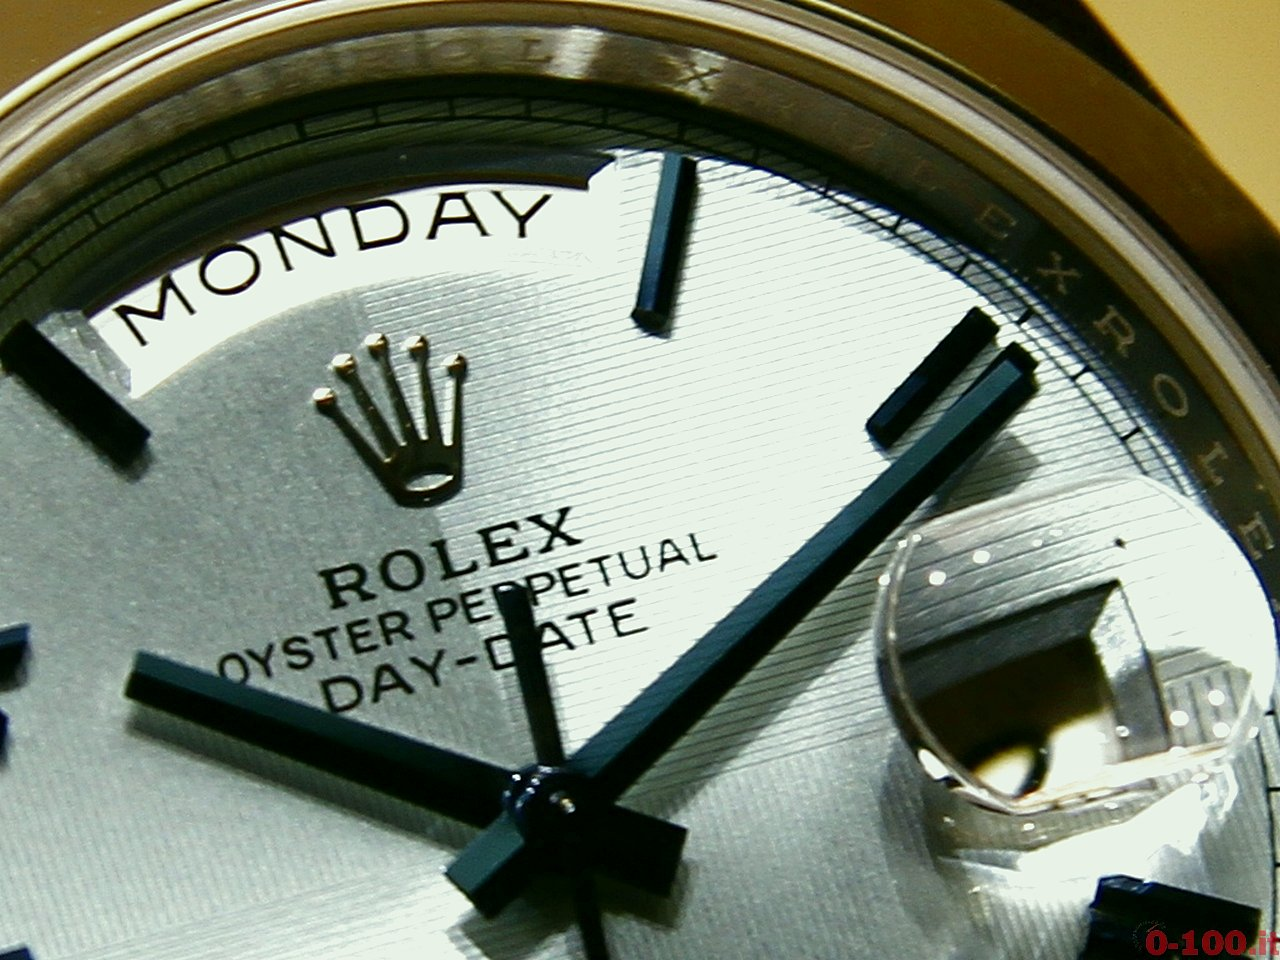 baselworld-2015_rolex-day-date-40-0-100_13